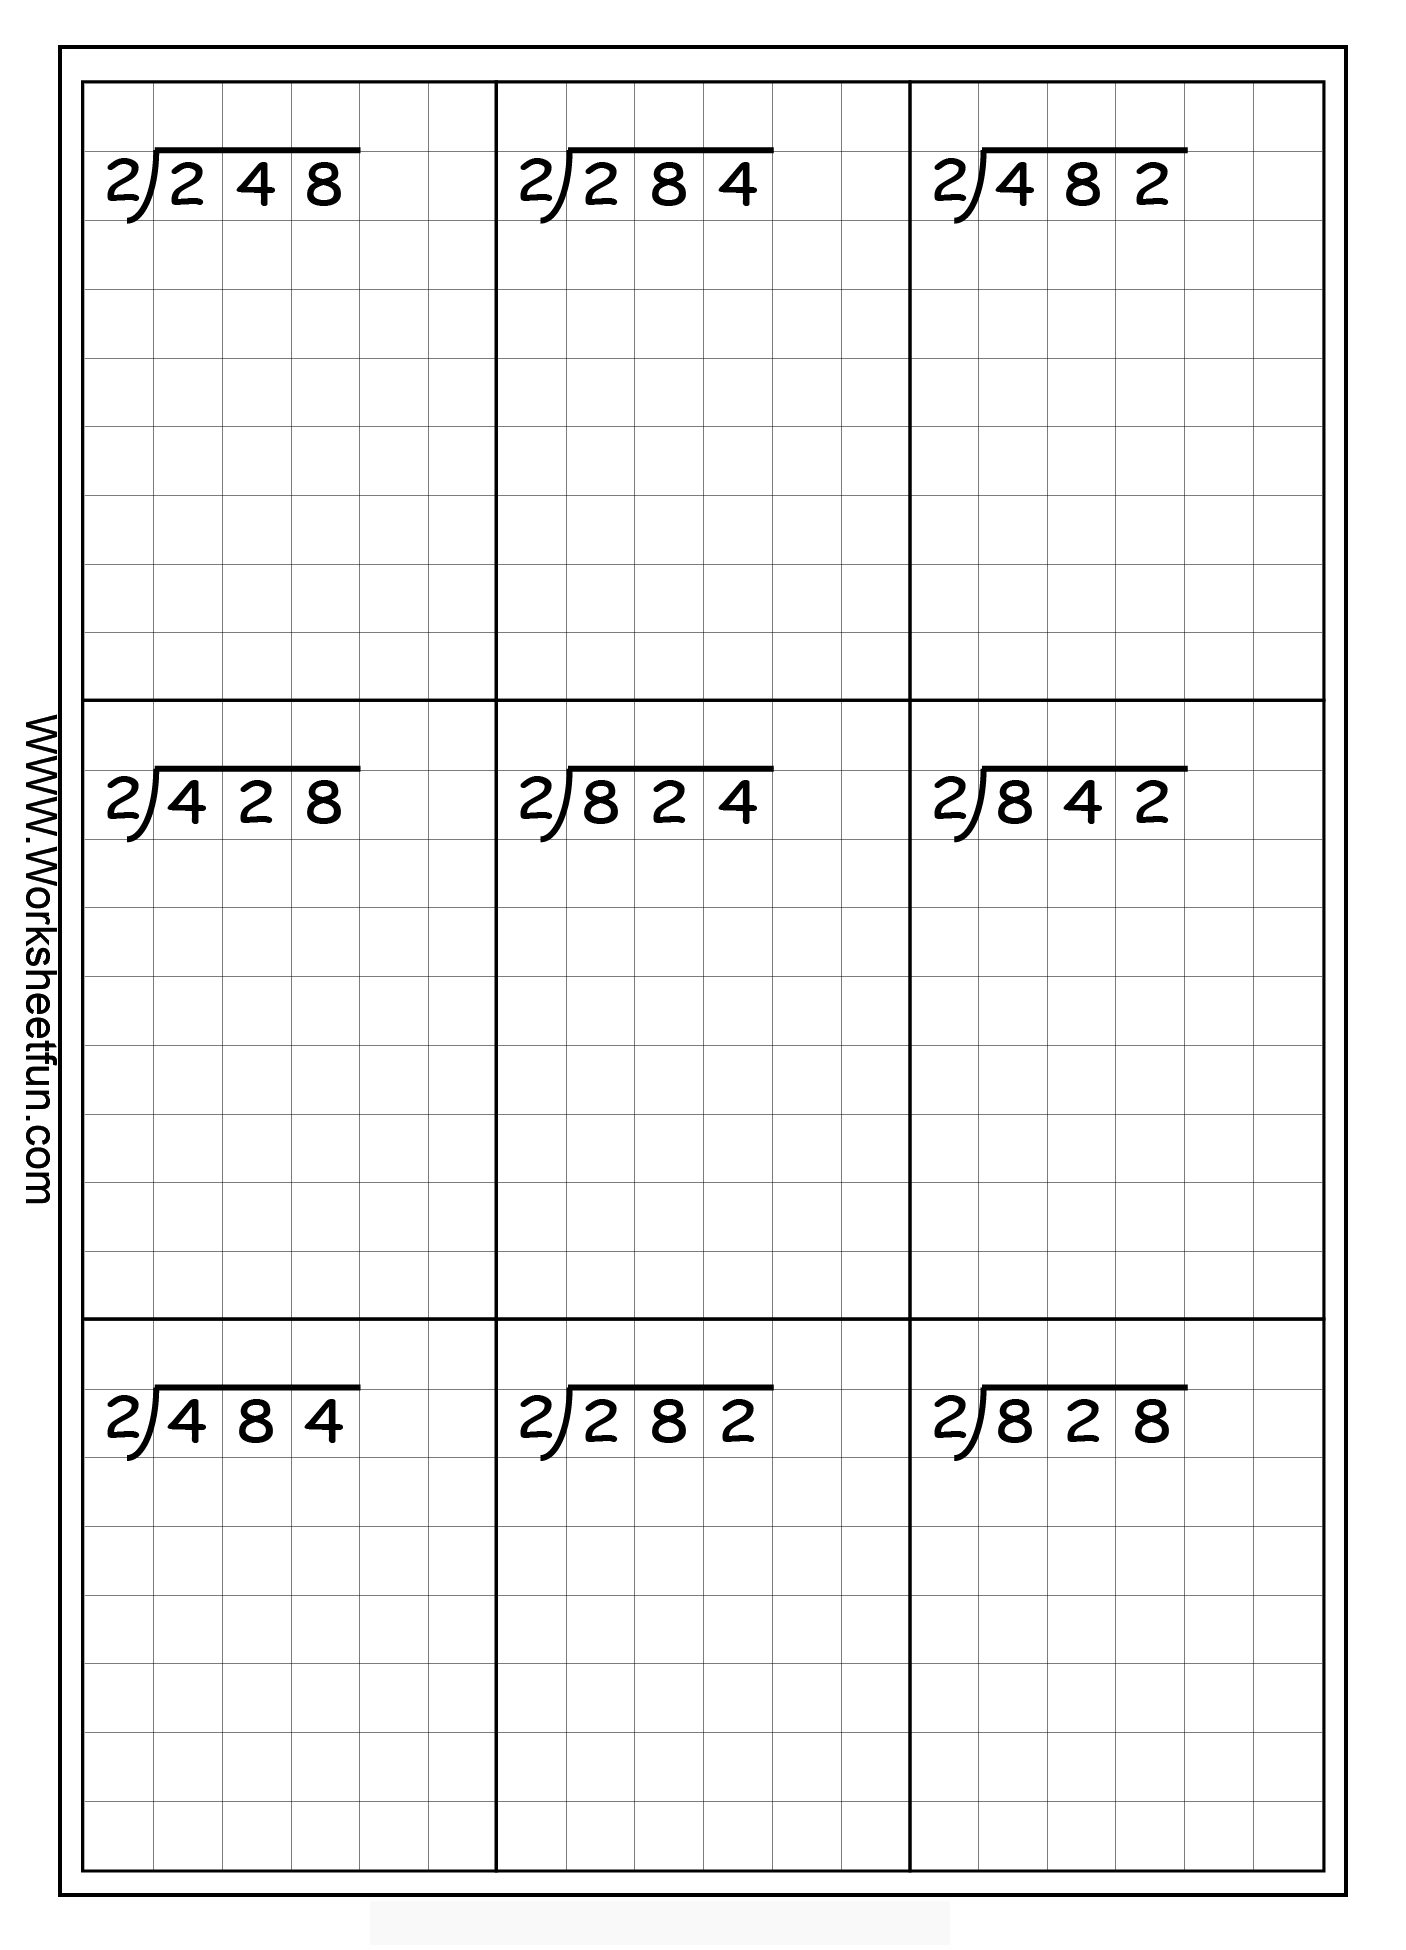 Long Division 3 Digits By 1 Digit Without Remainders 20 Worksheets Free Printable